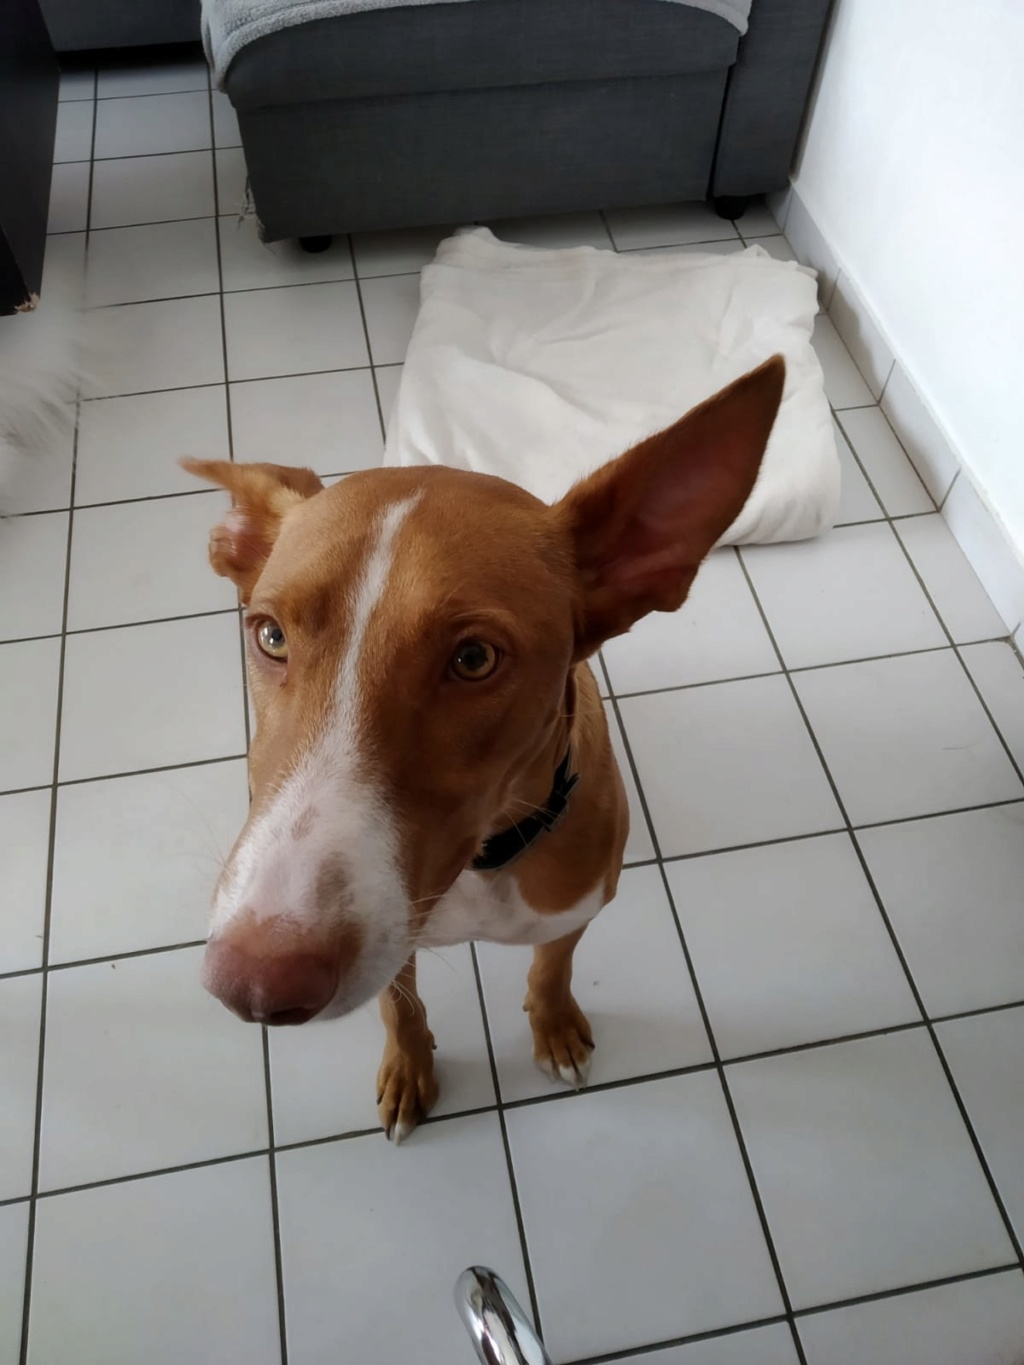 NEOO - X Podenco - Dans le 74 Img-2163